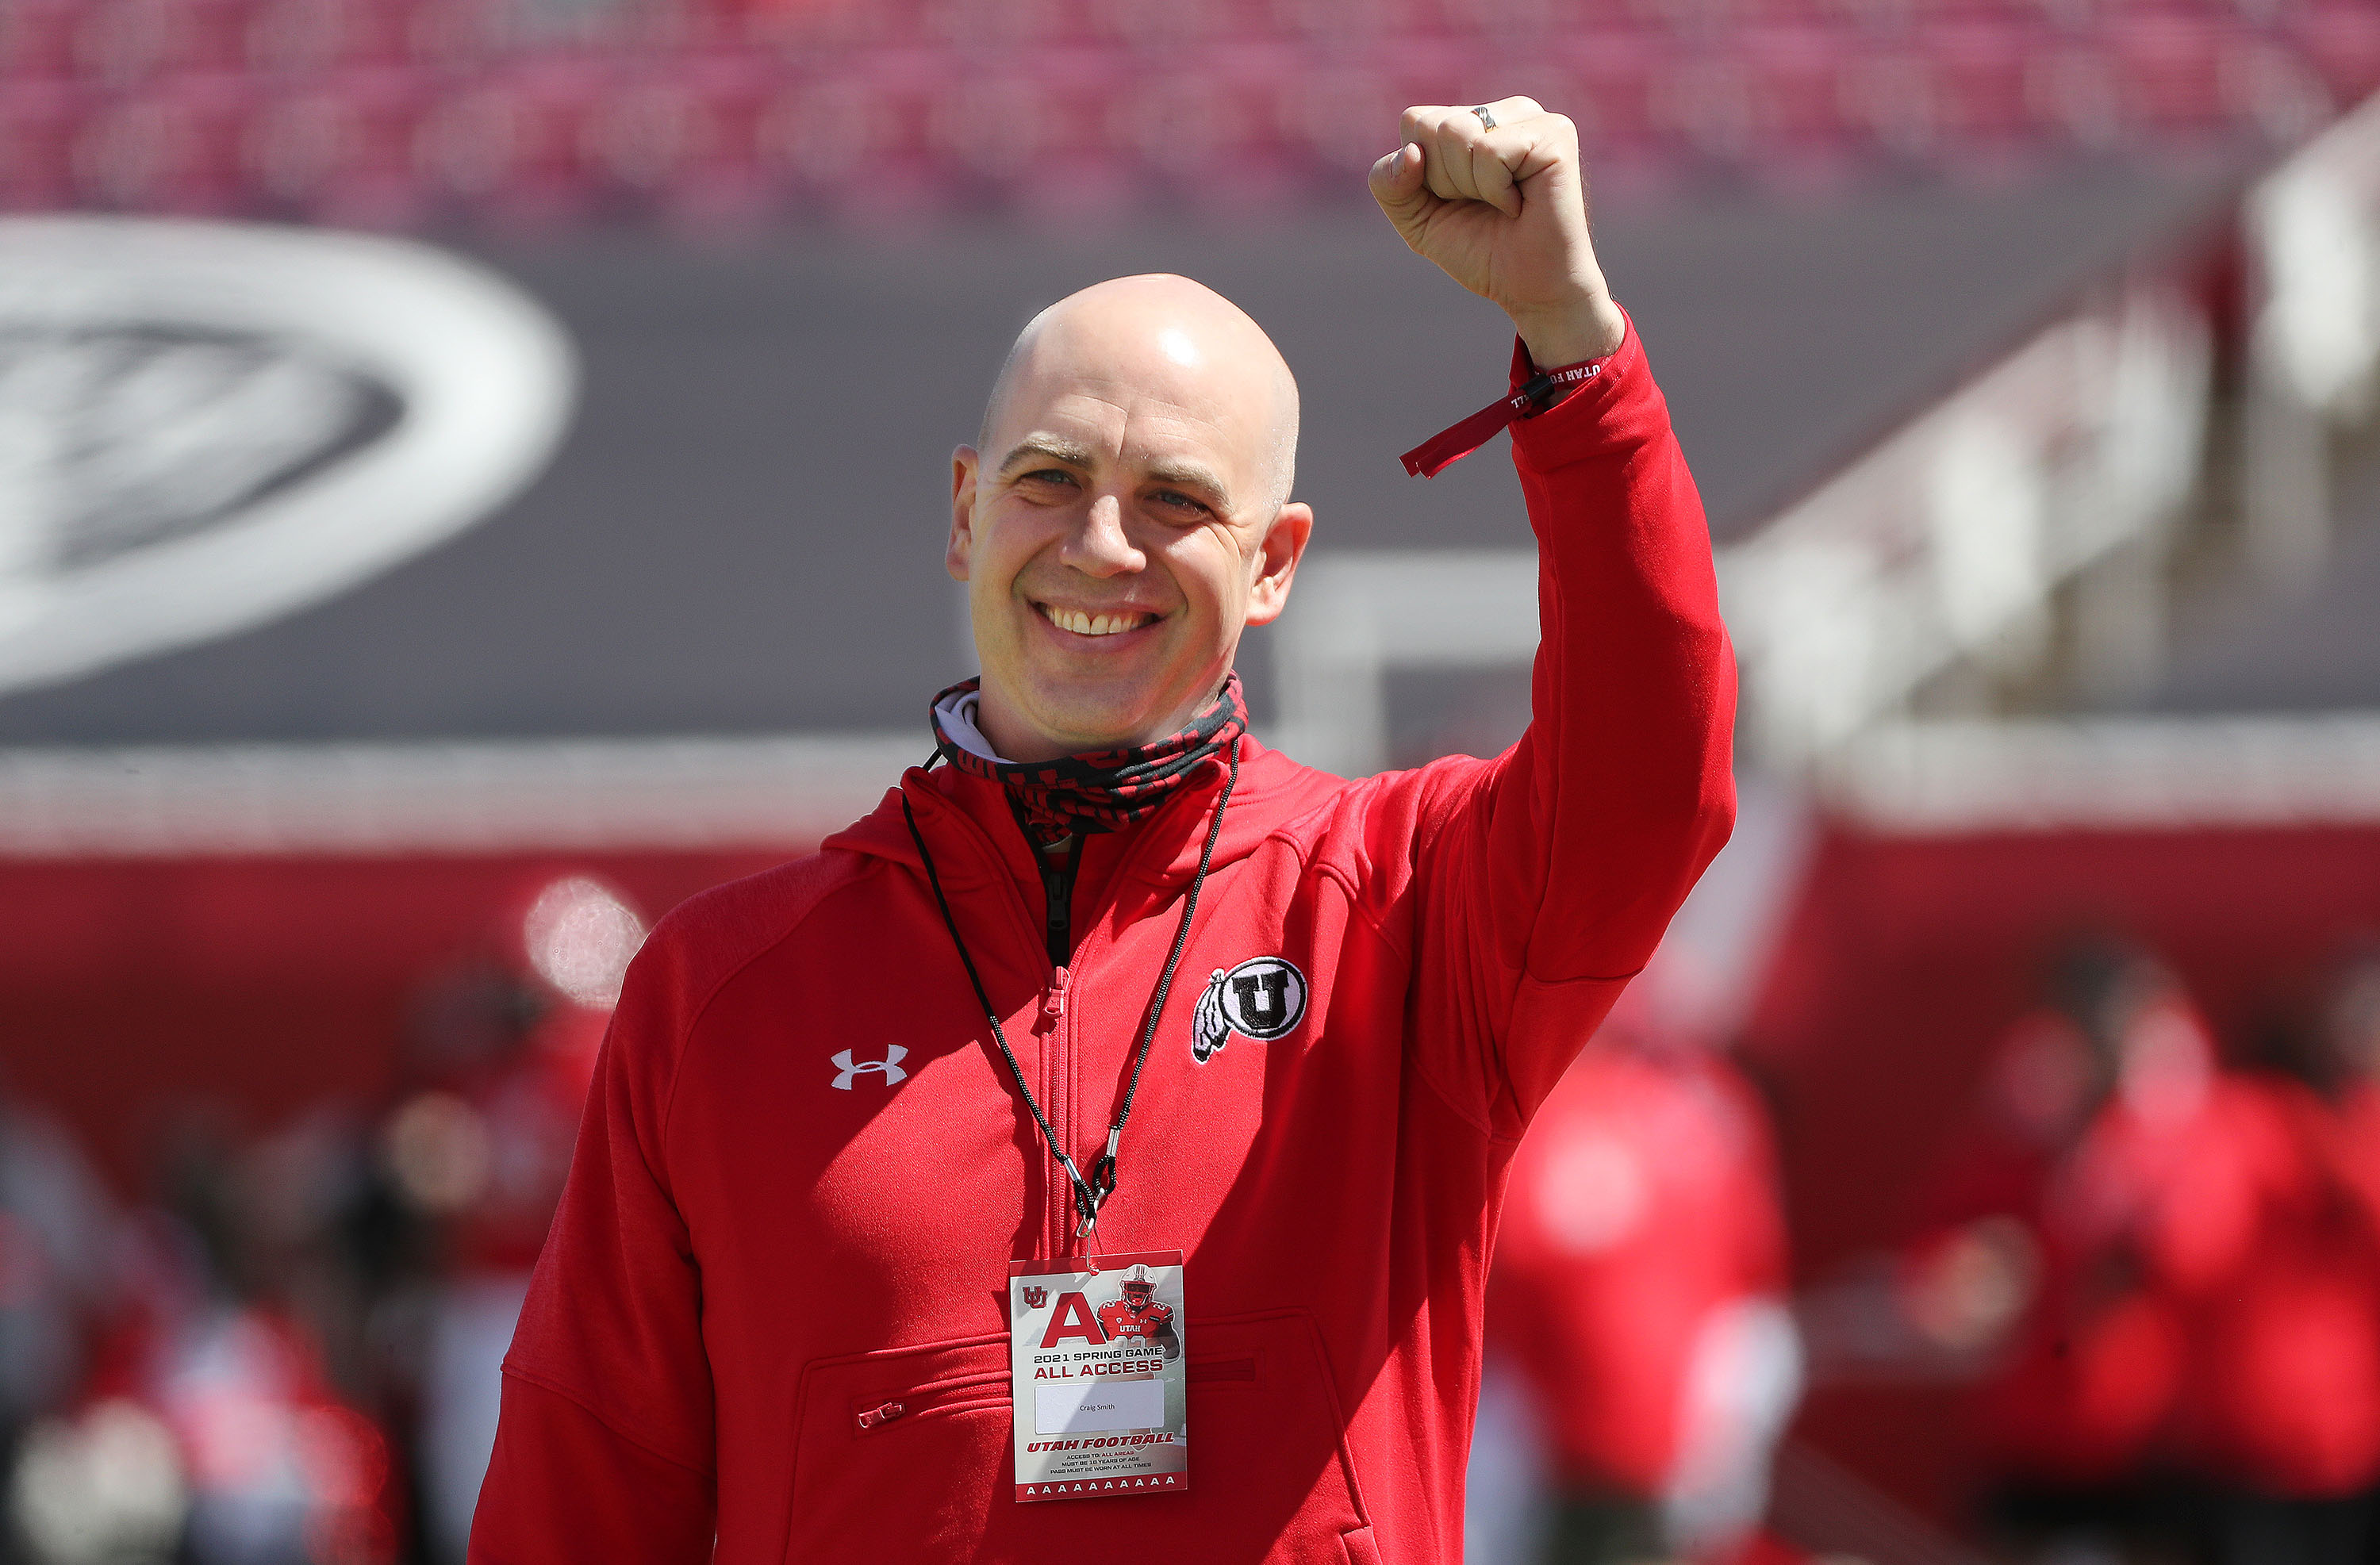 University of Utah basketball coach Craig Smith is introduced during the Red and White game in Salt Lake City on Saturday, April 17, 2021.